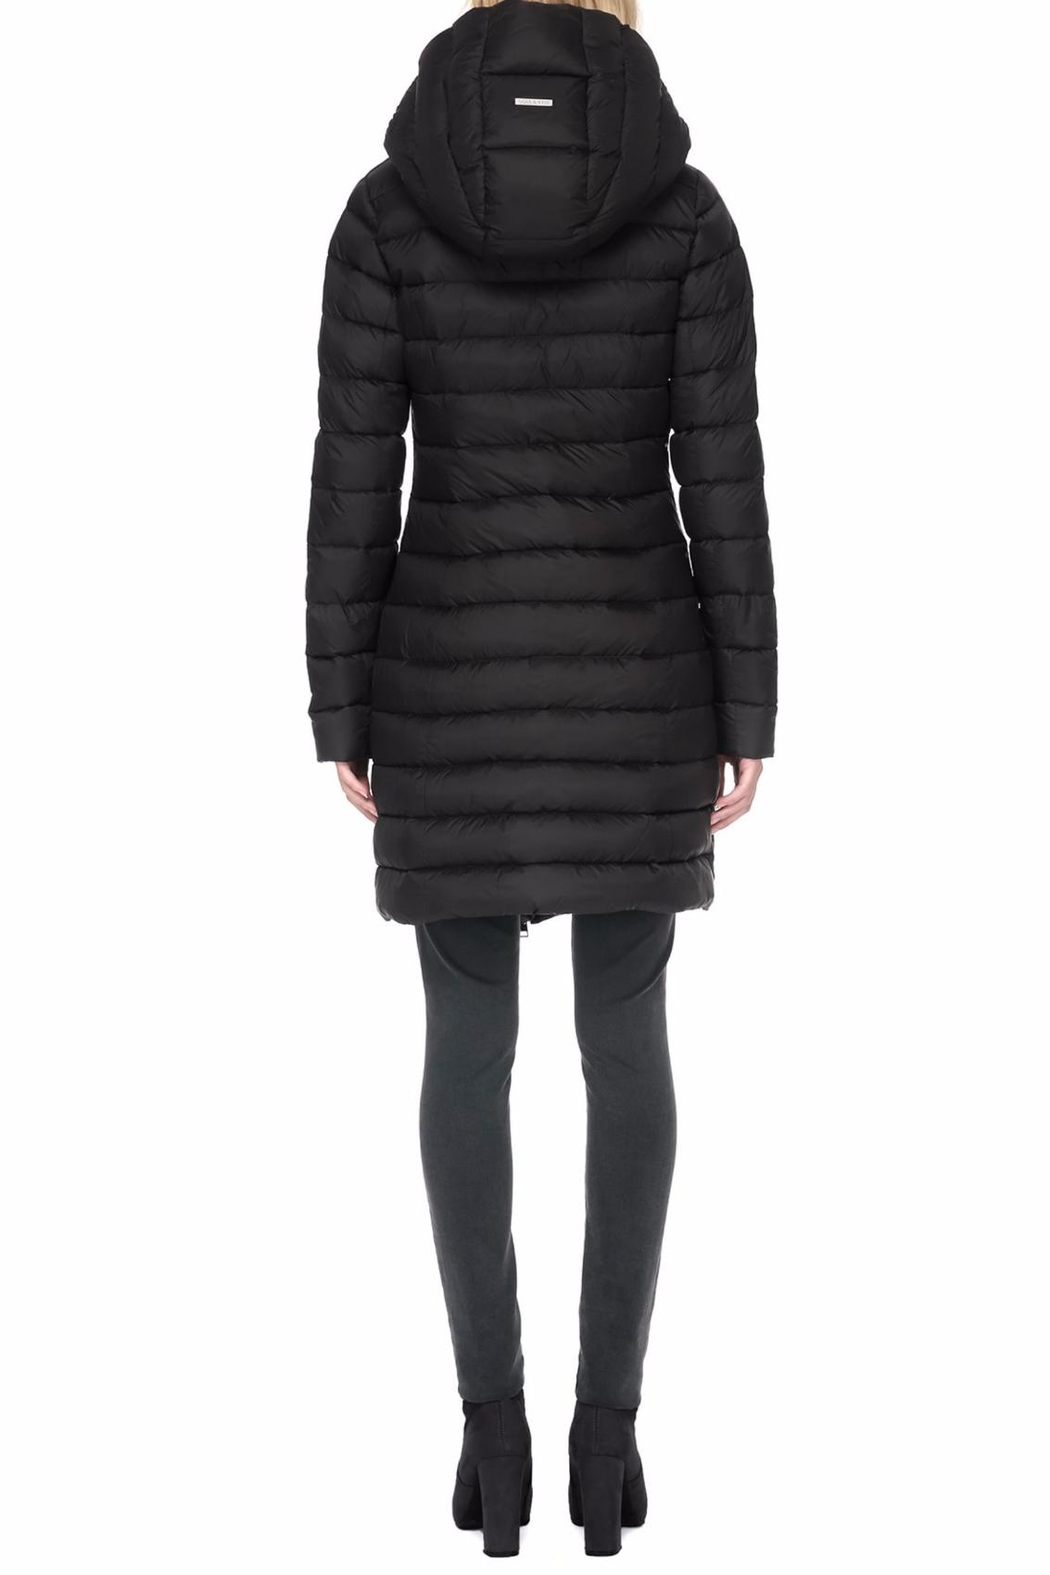 Soia & Kyo Karelle Light Down Coat - Side Cropped Image